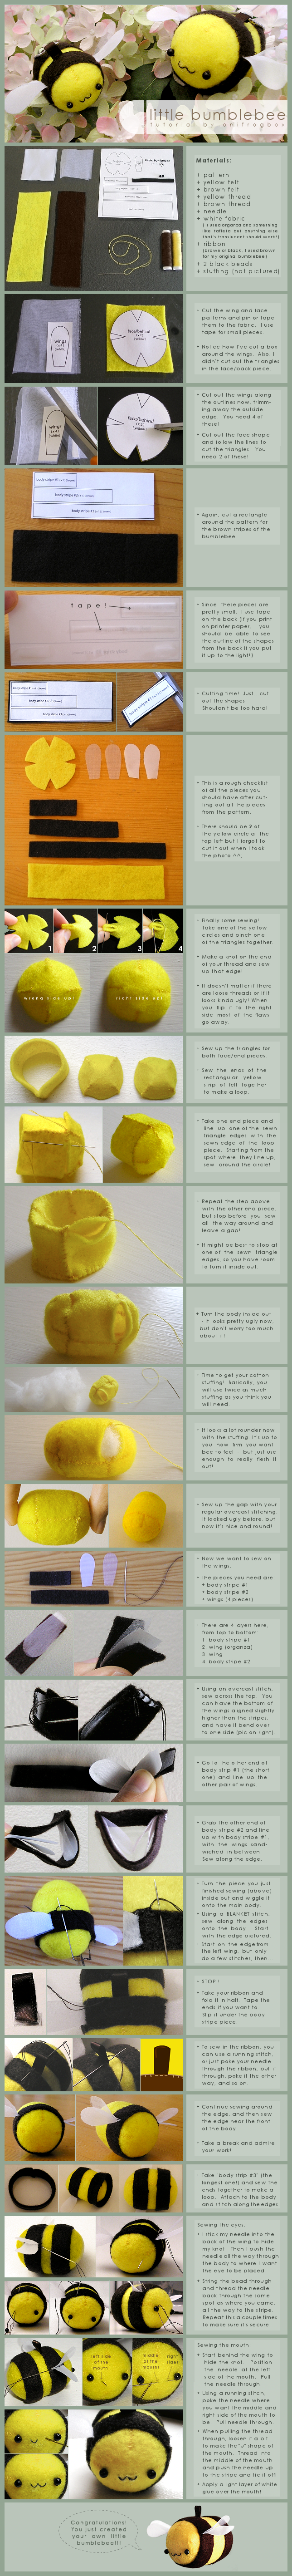 little bumblebee: tutorial by onifrogbox